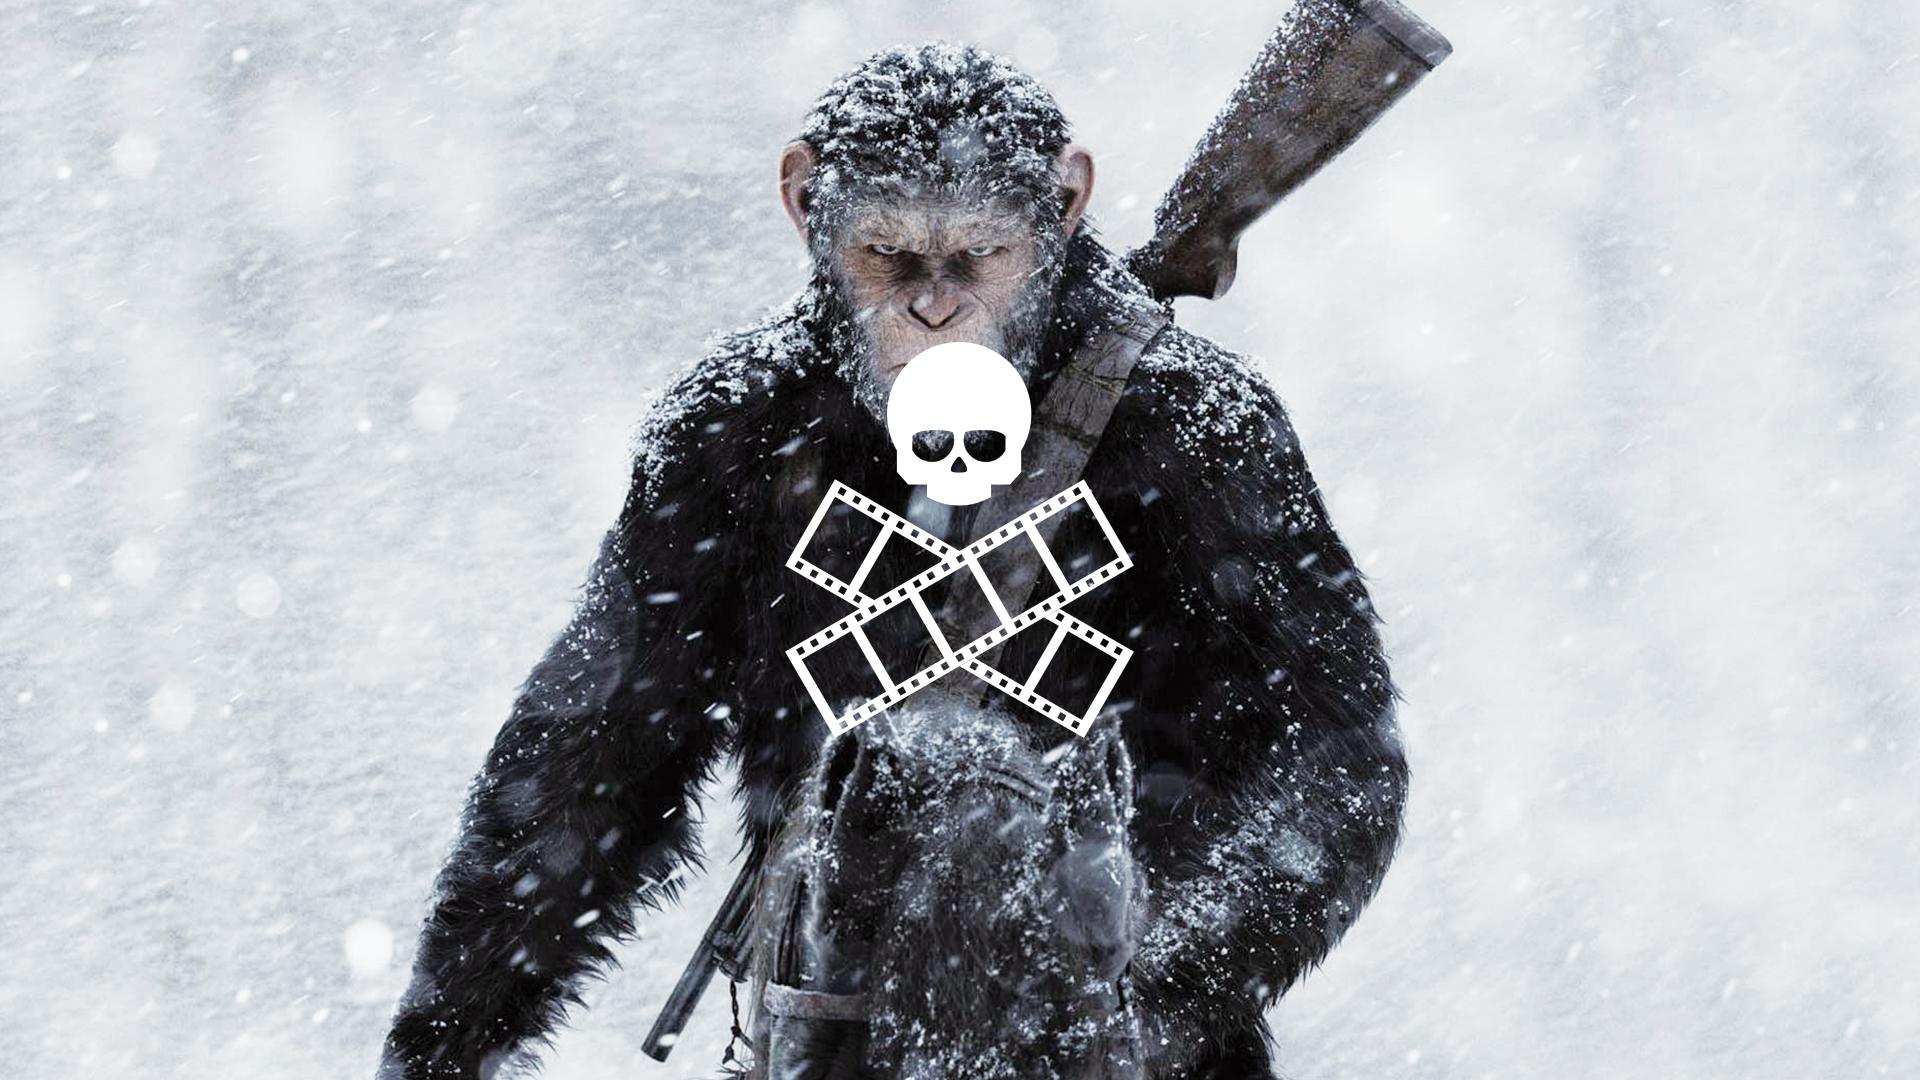 107. War for the Planet of the Apes